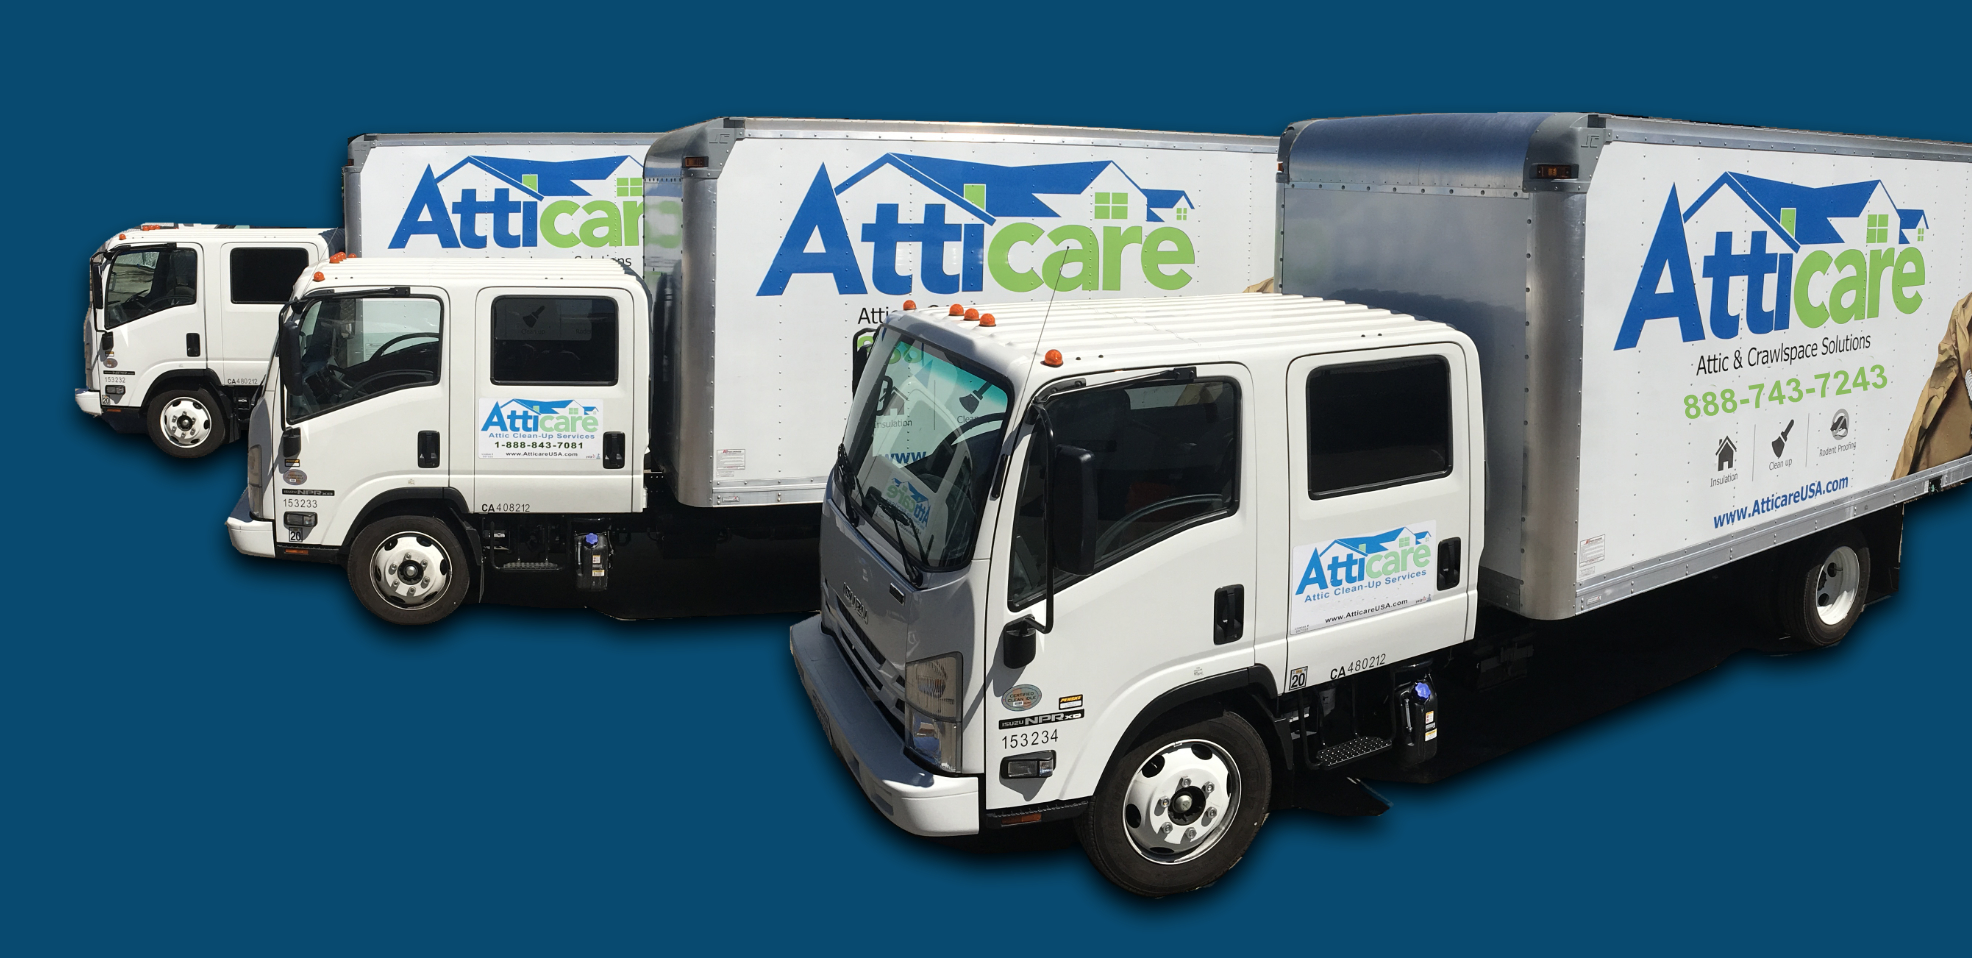 Atticare Corp. reviews | Insulation Installation at 591 Montague Ave - San Leandro CA